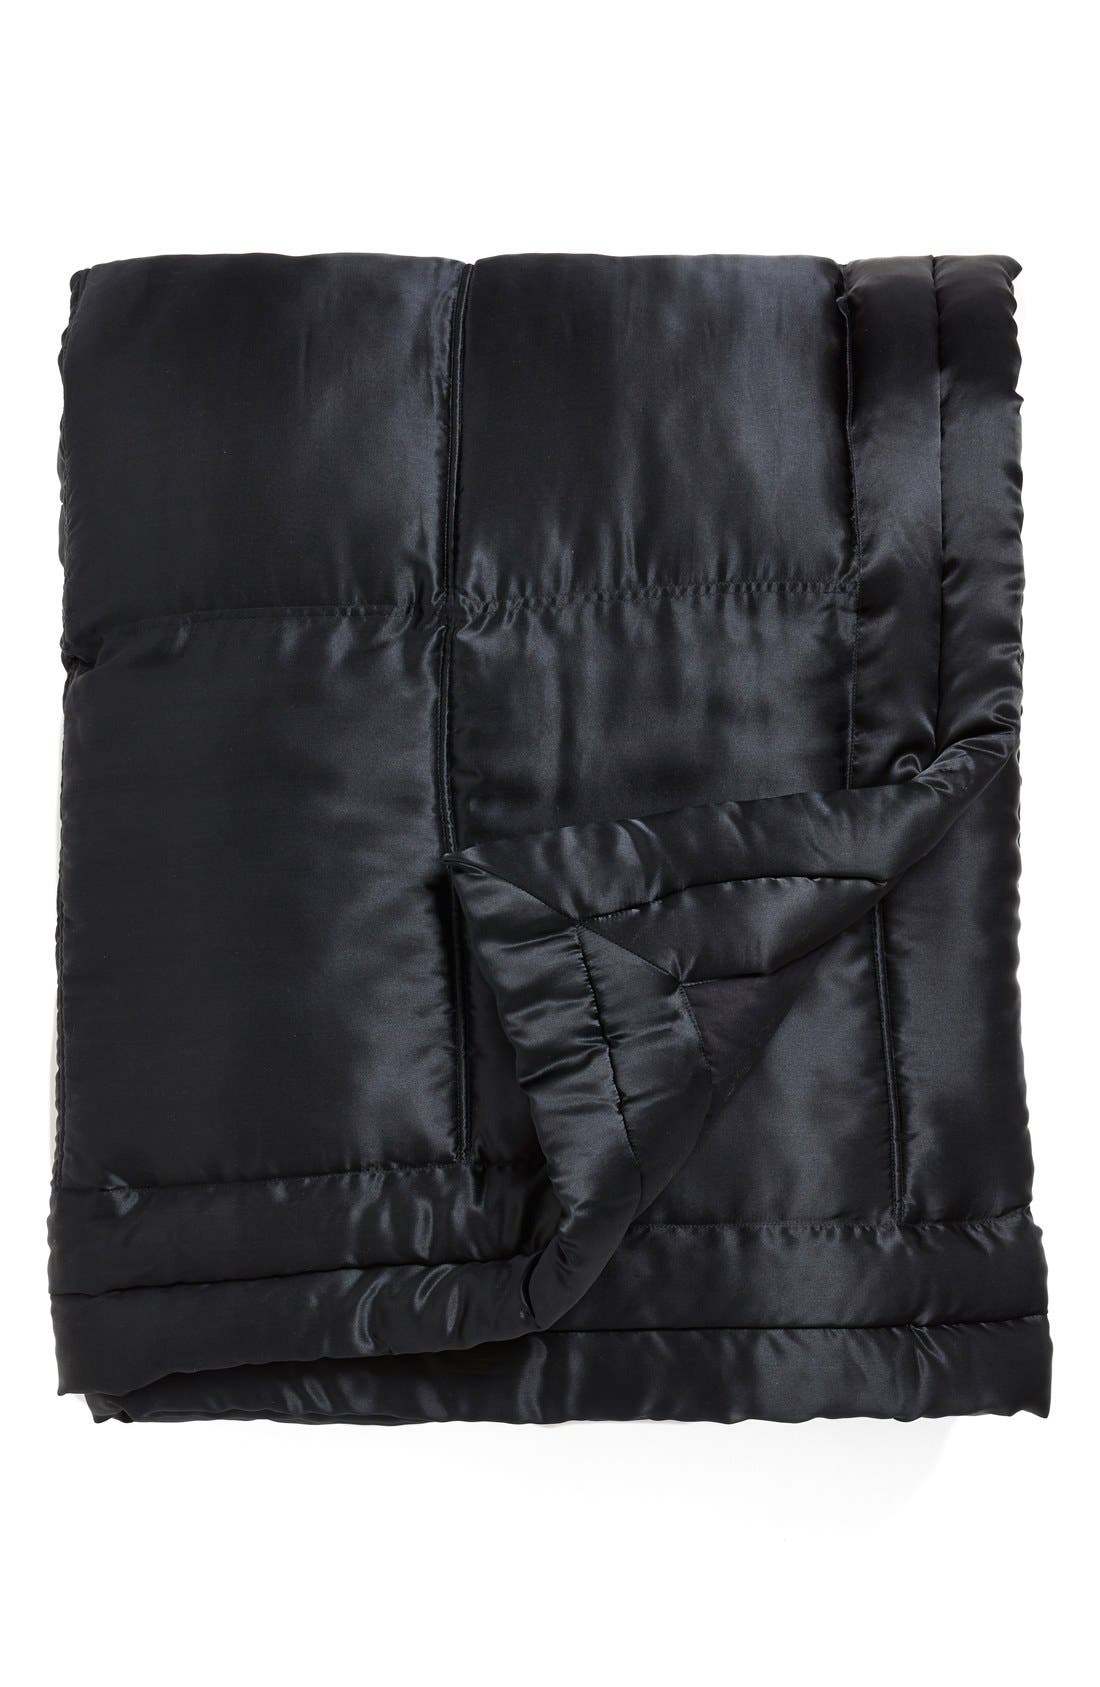 Alternate Image 1 Selected - Donna Karan Collection 'Impression' Silk Charmeuse Quilt